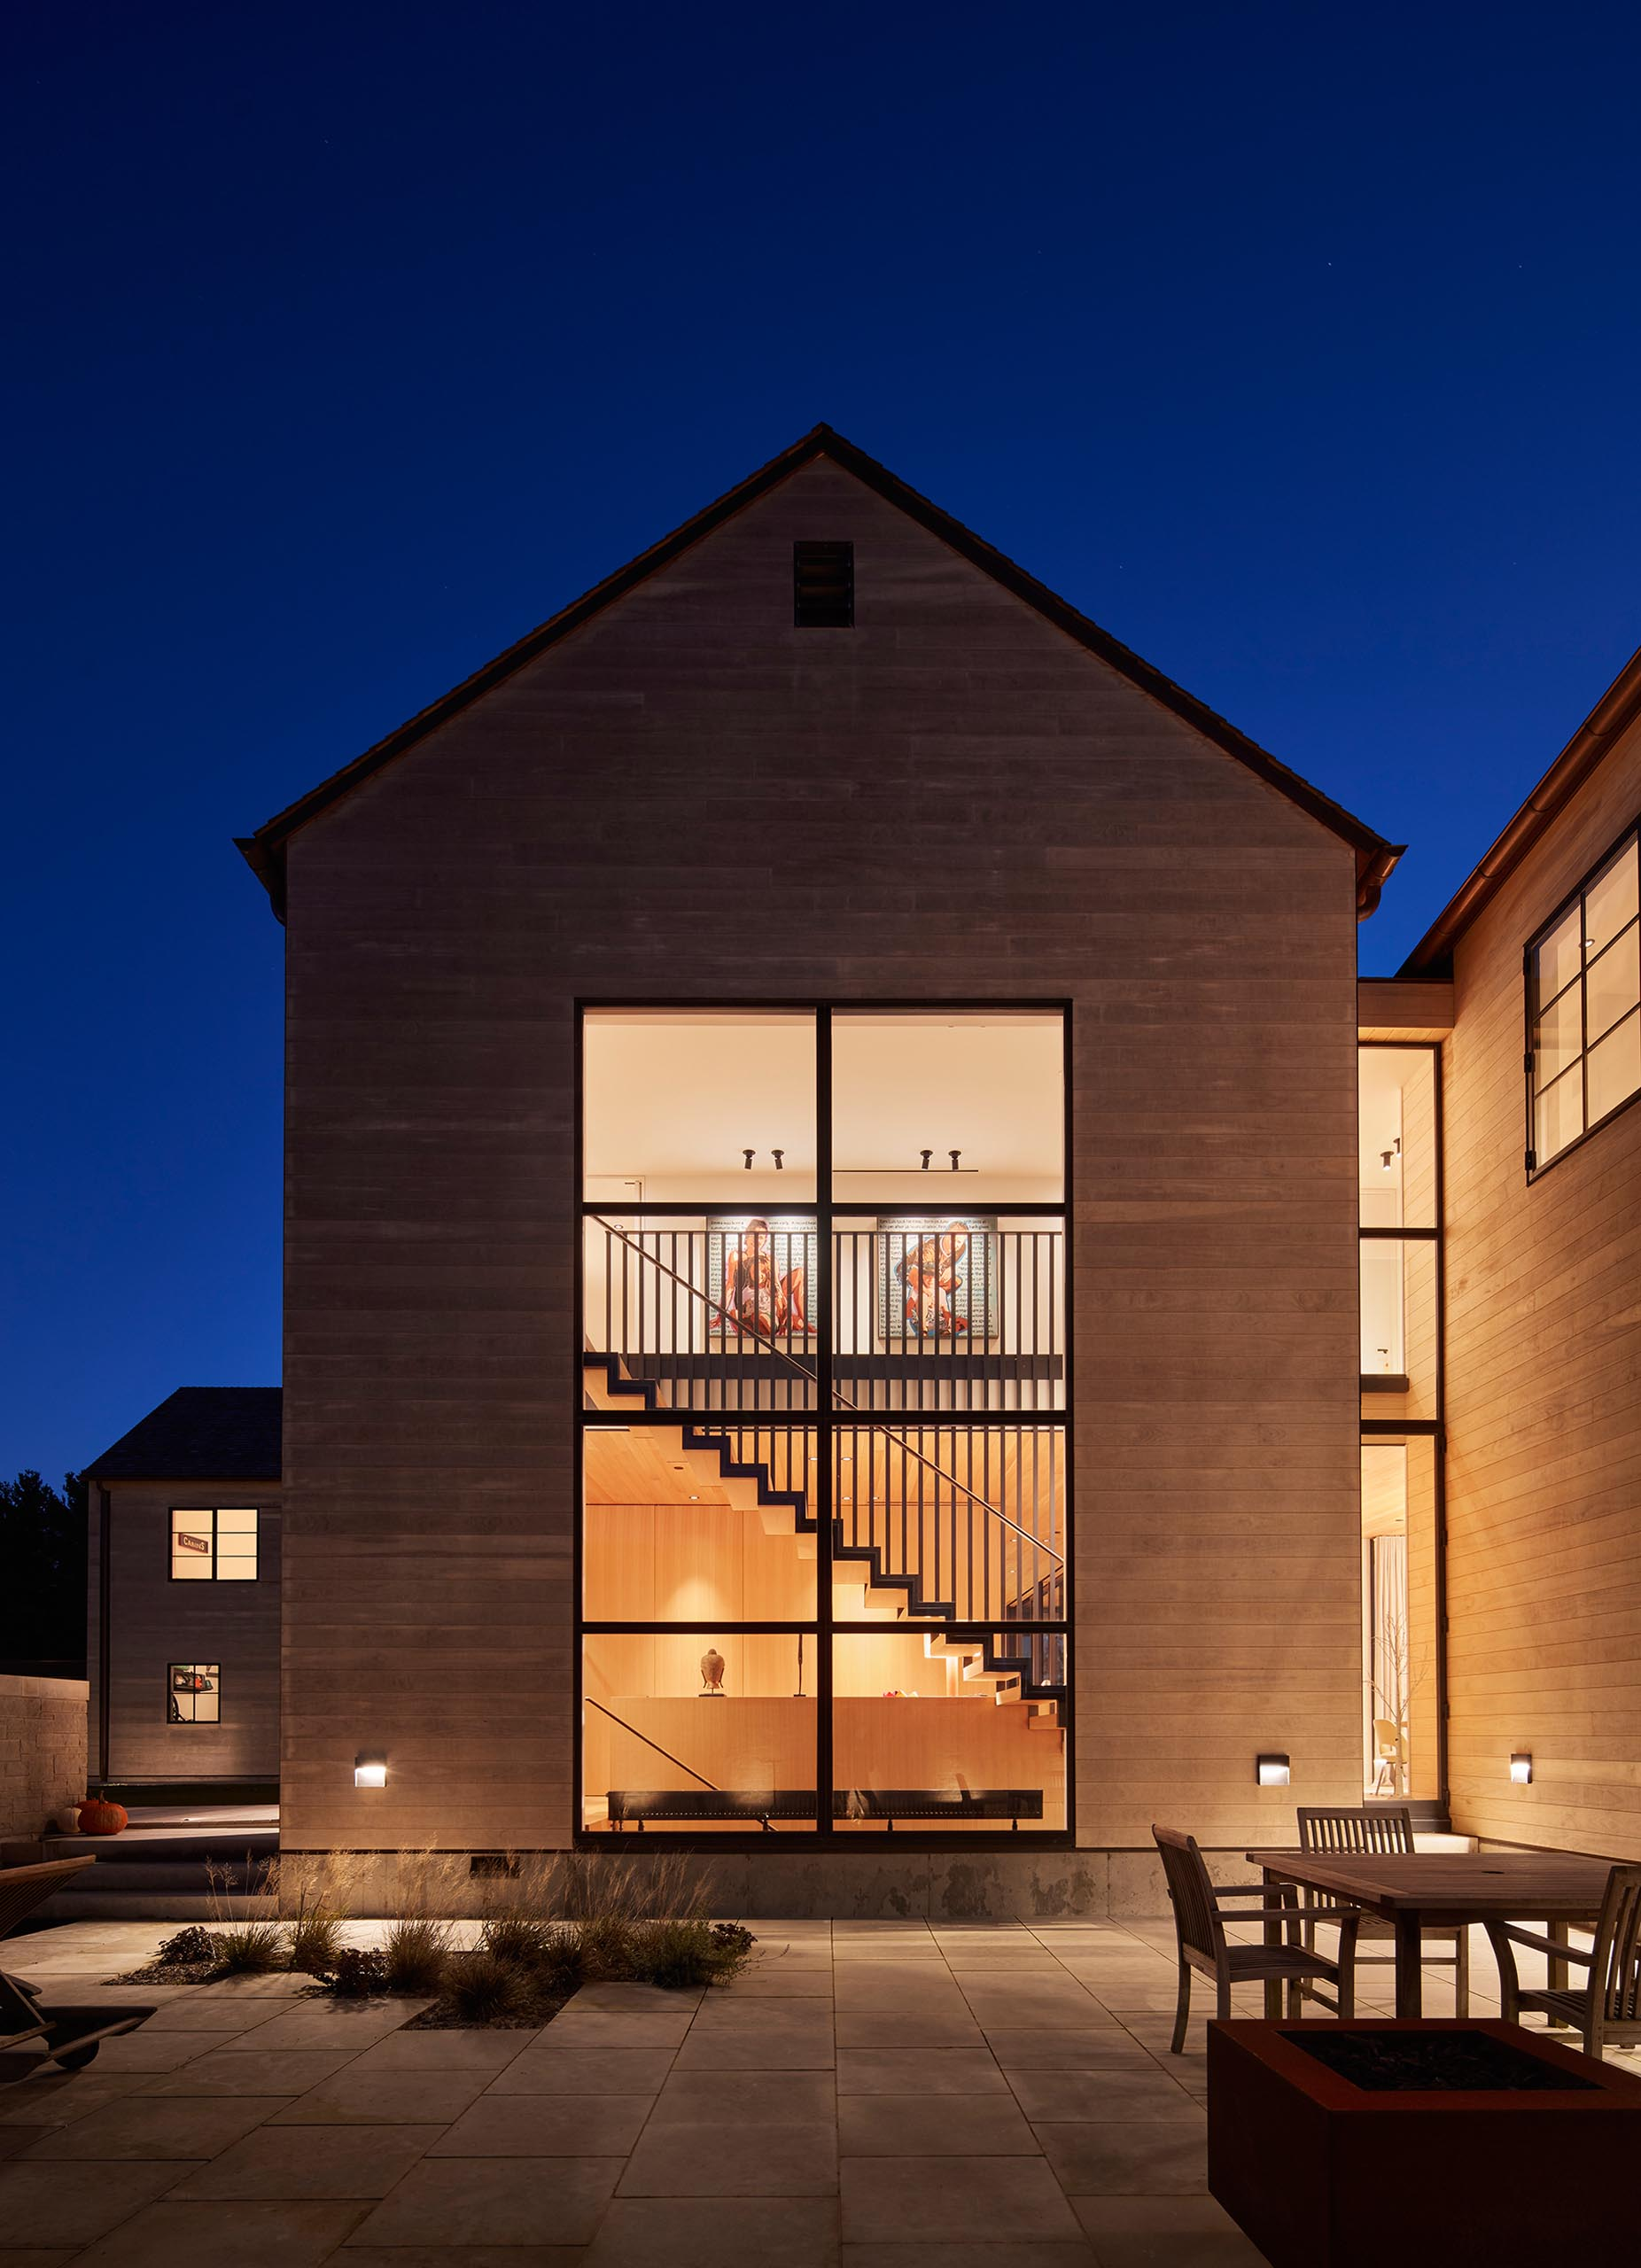 Large windows showcase a steel and wood staircase inside the home.